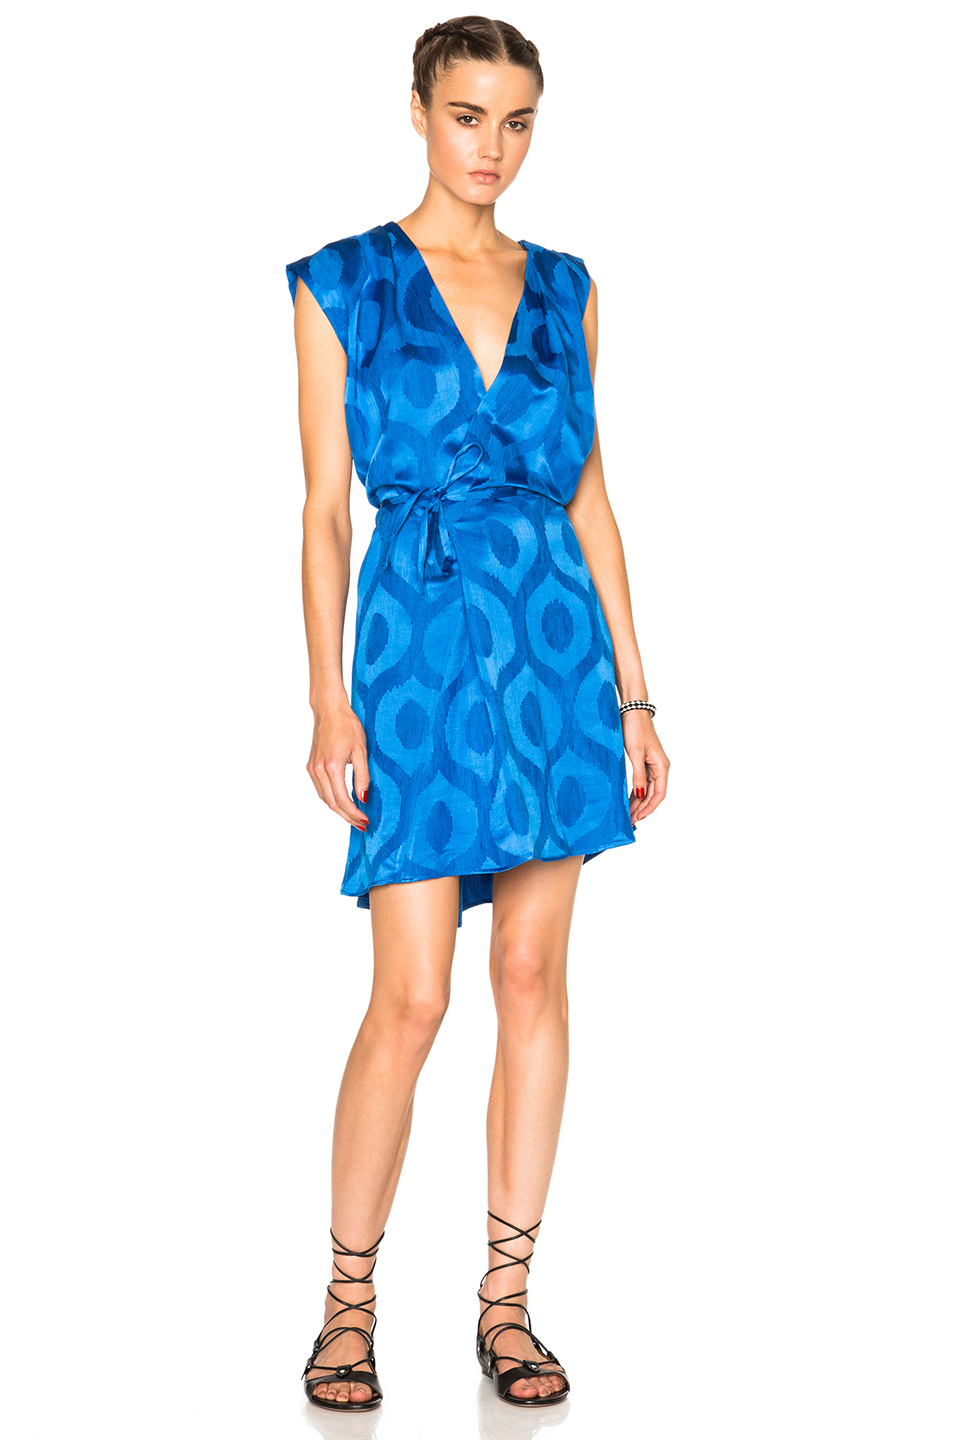 Isabel Marant Sudley New Moire Dress in Blue